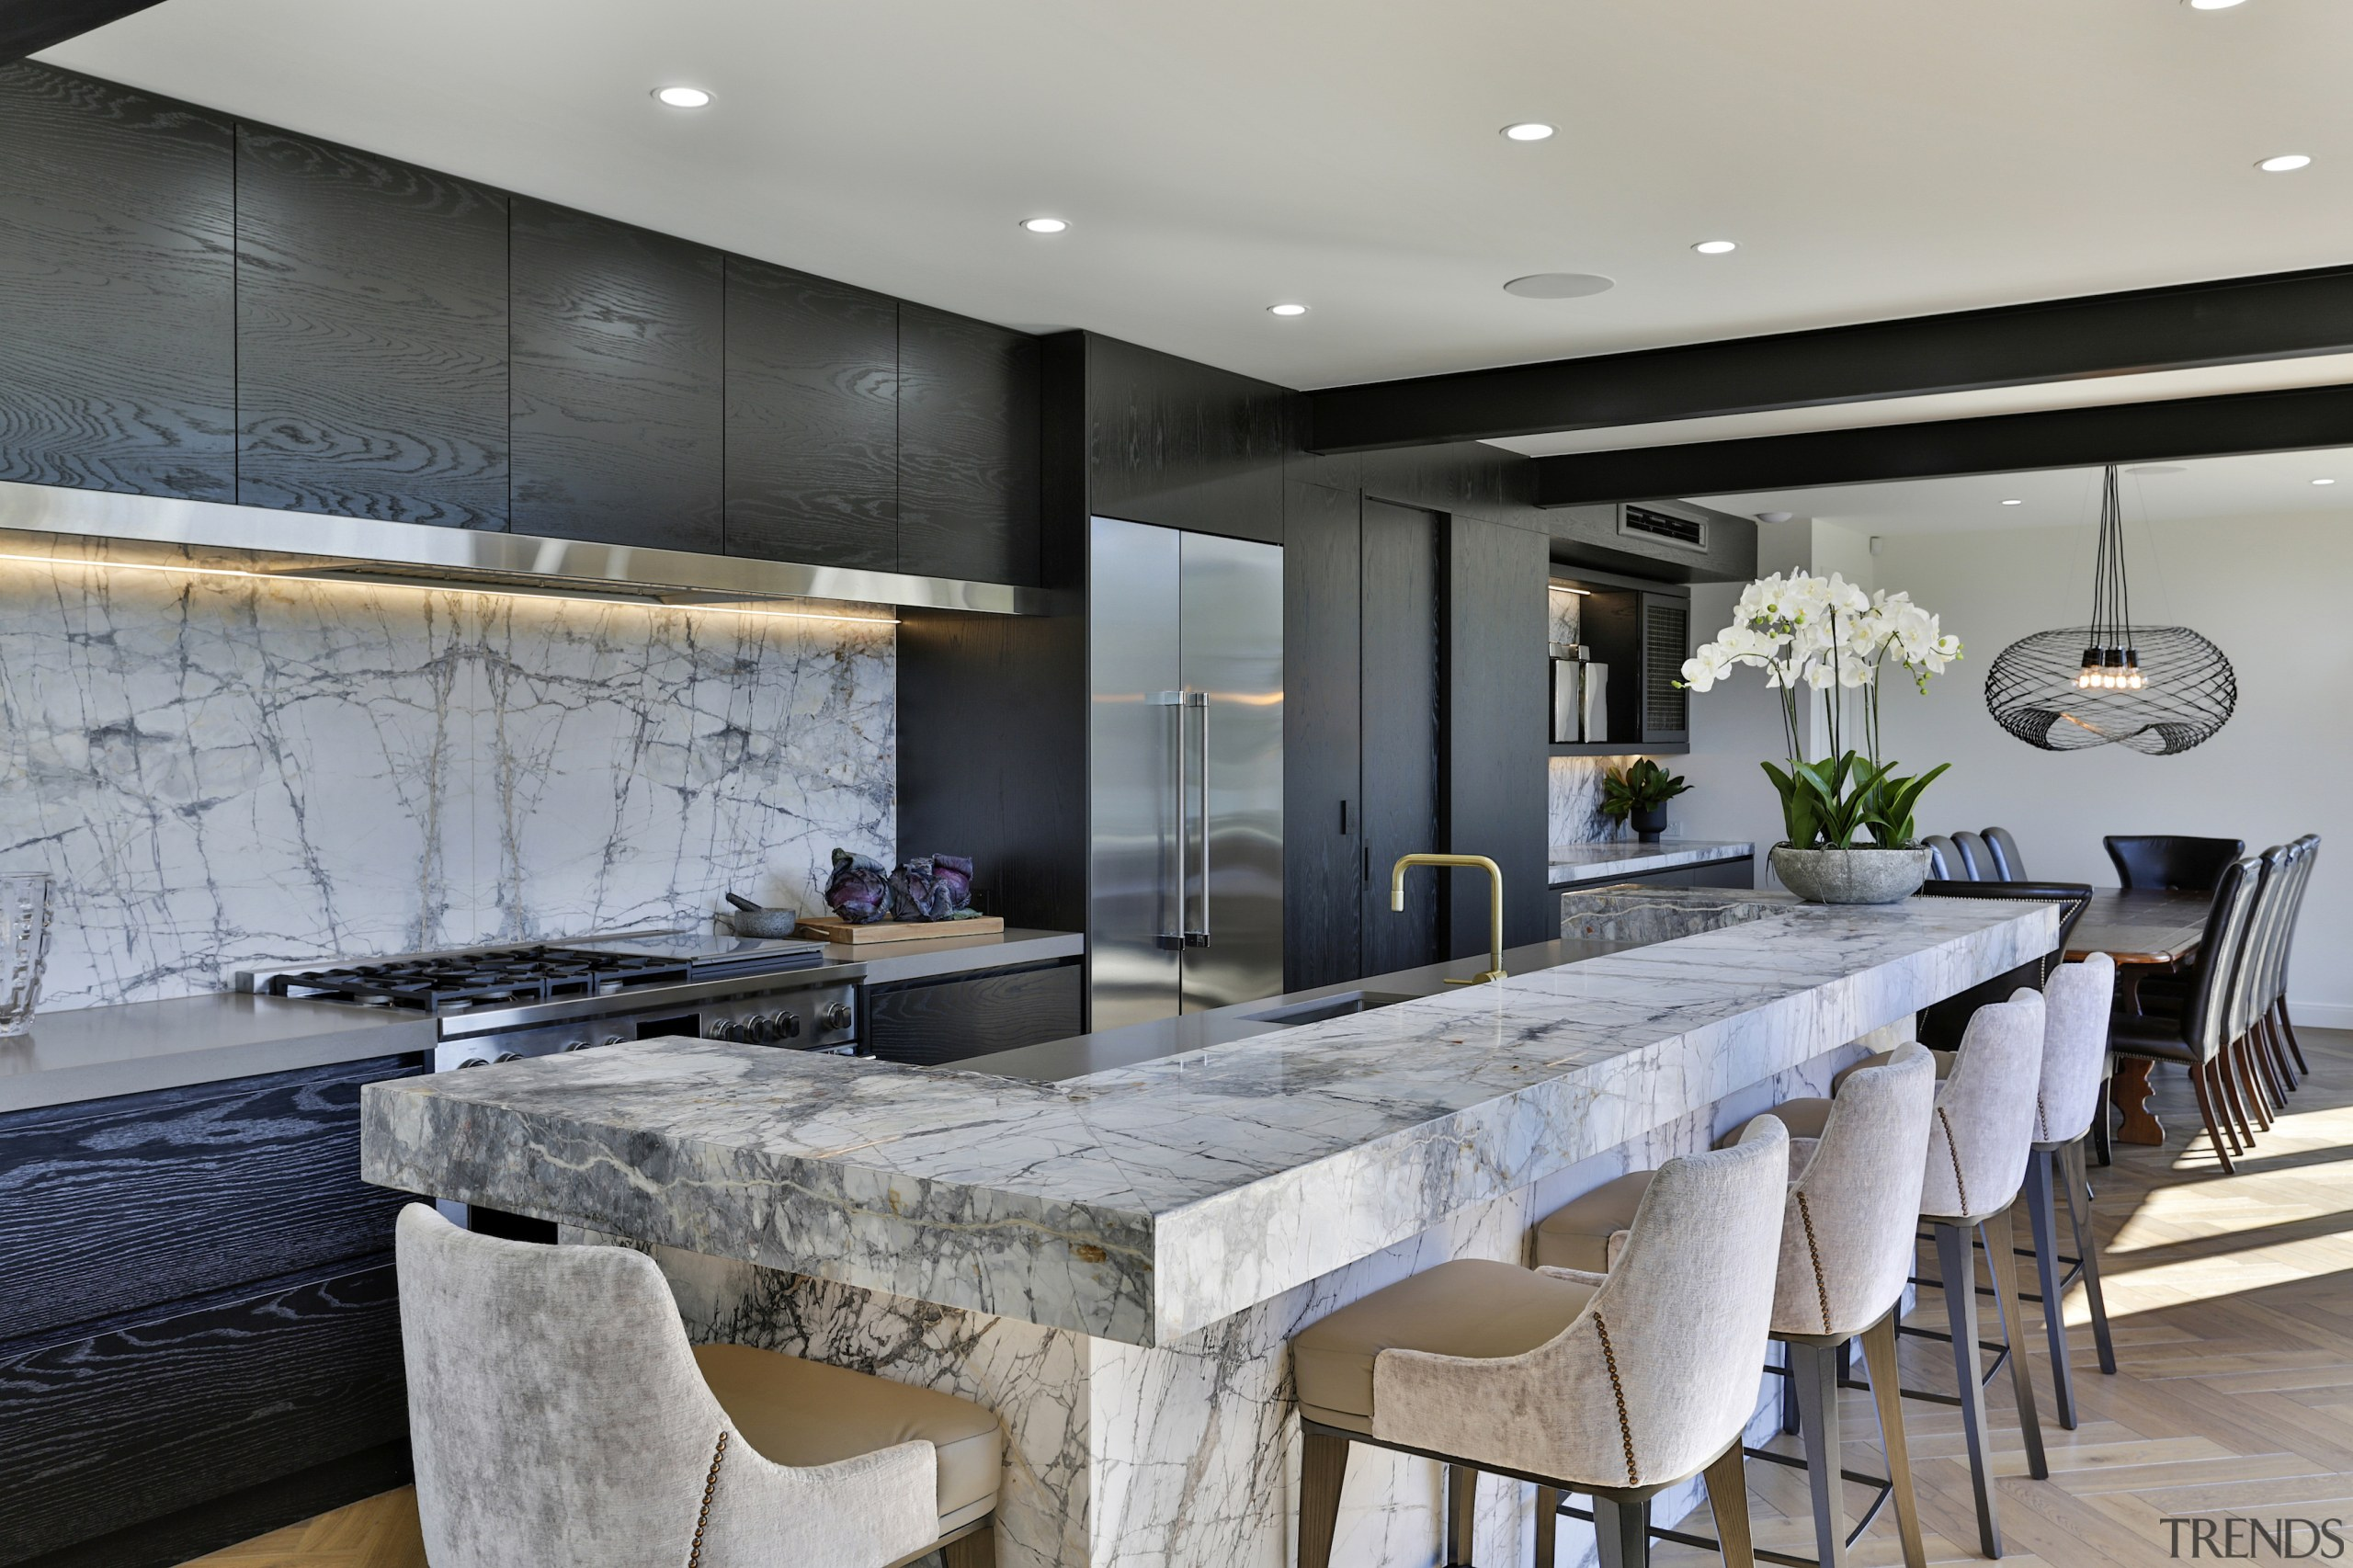 Careful attention to book-matching the strong veining of